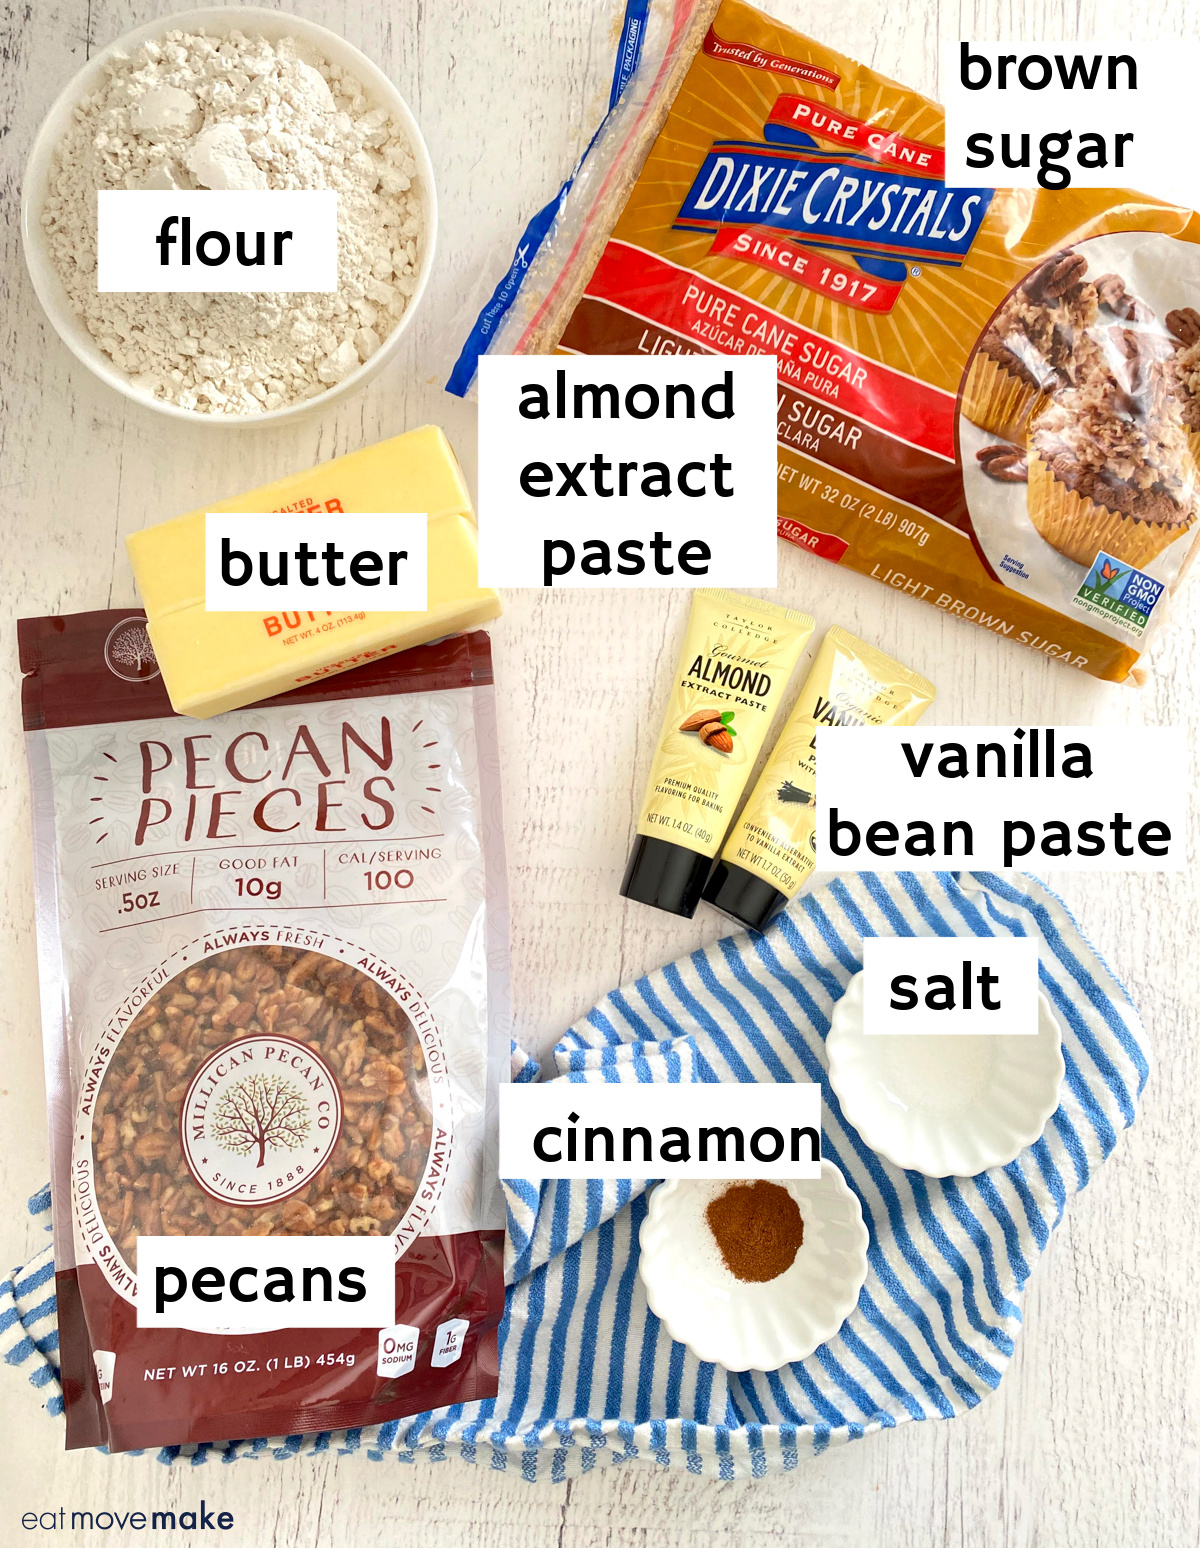 labeled pecan cookie ingredients with brands